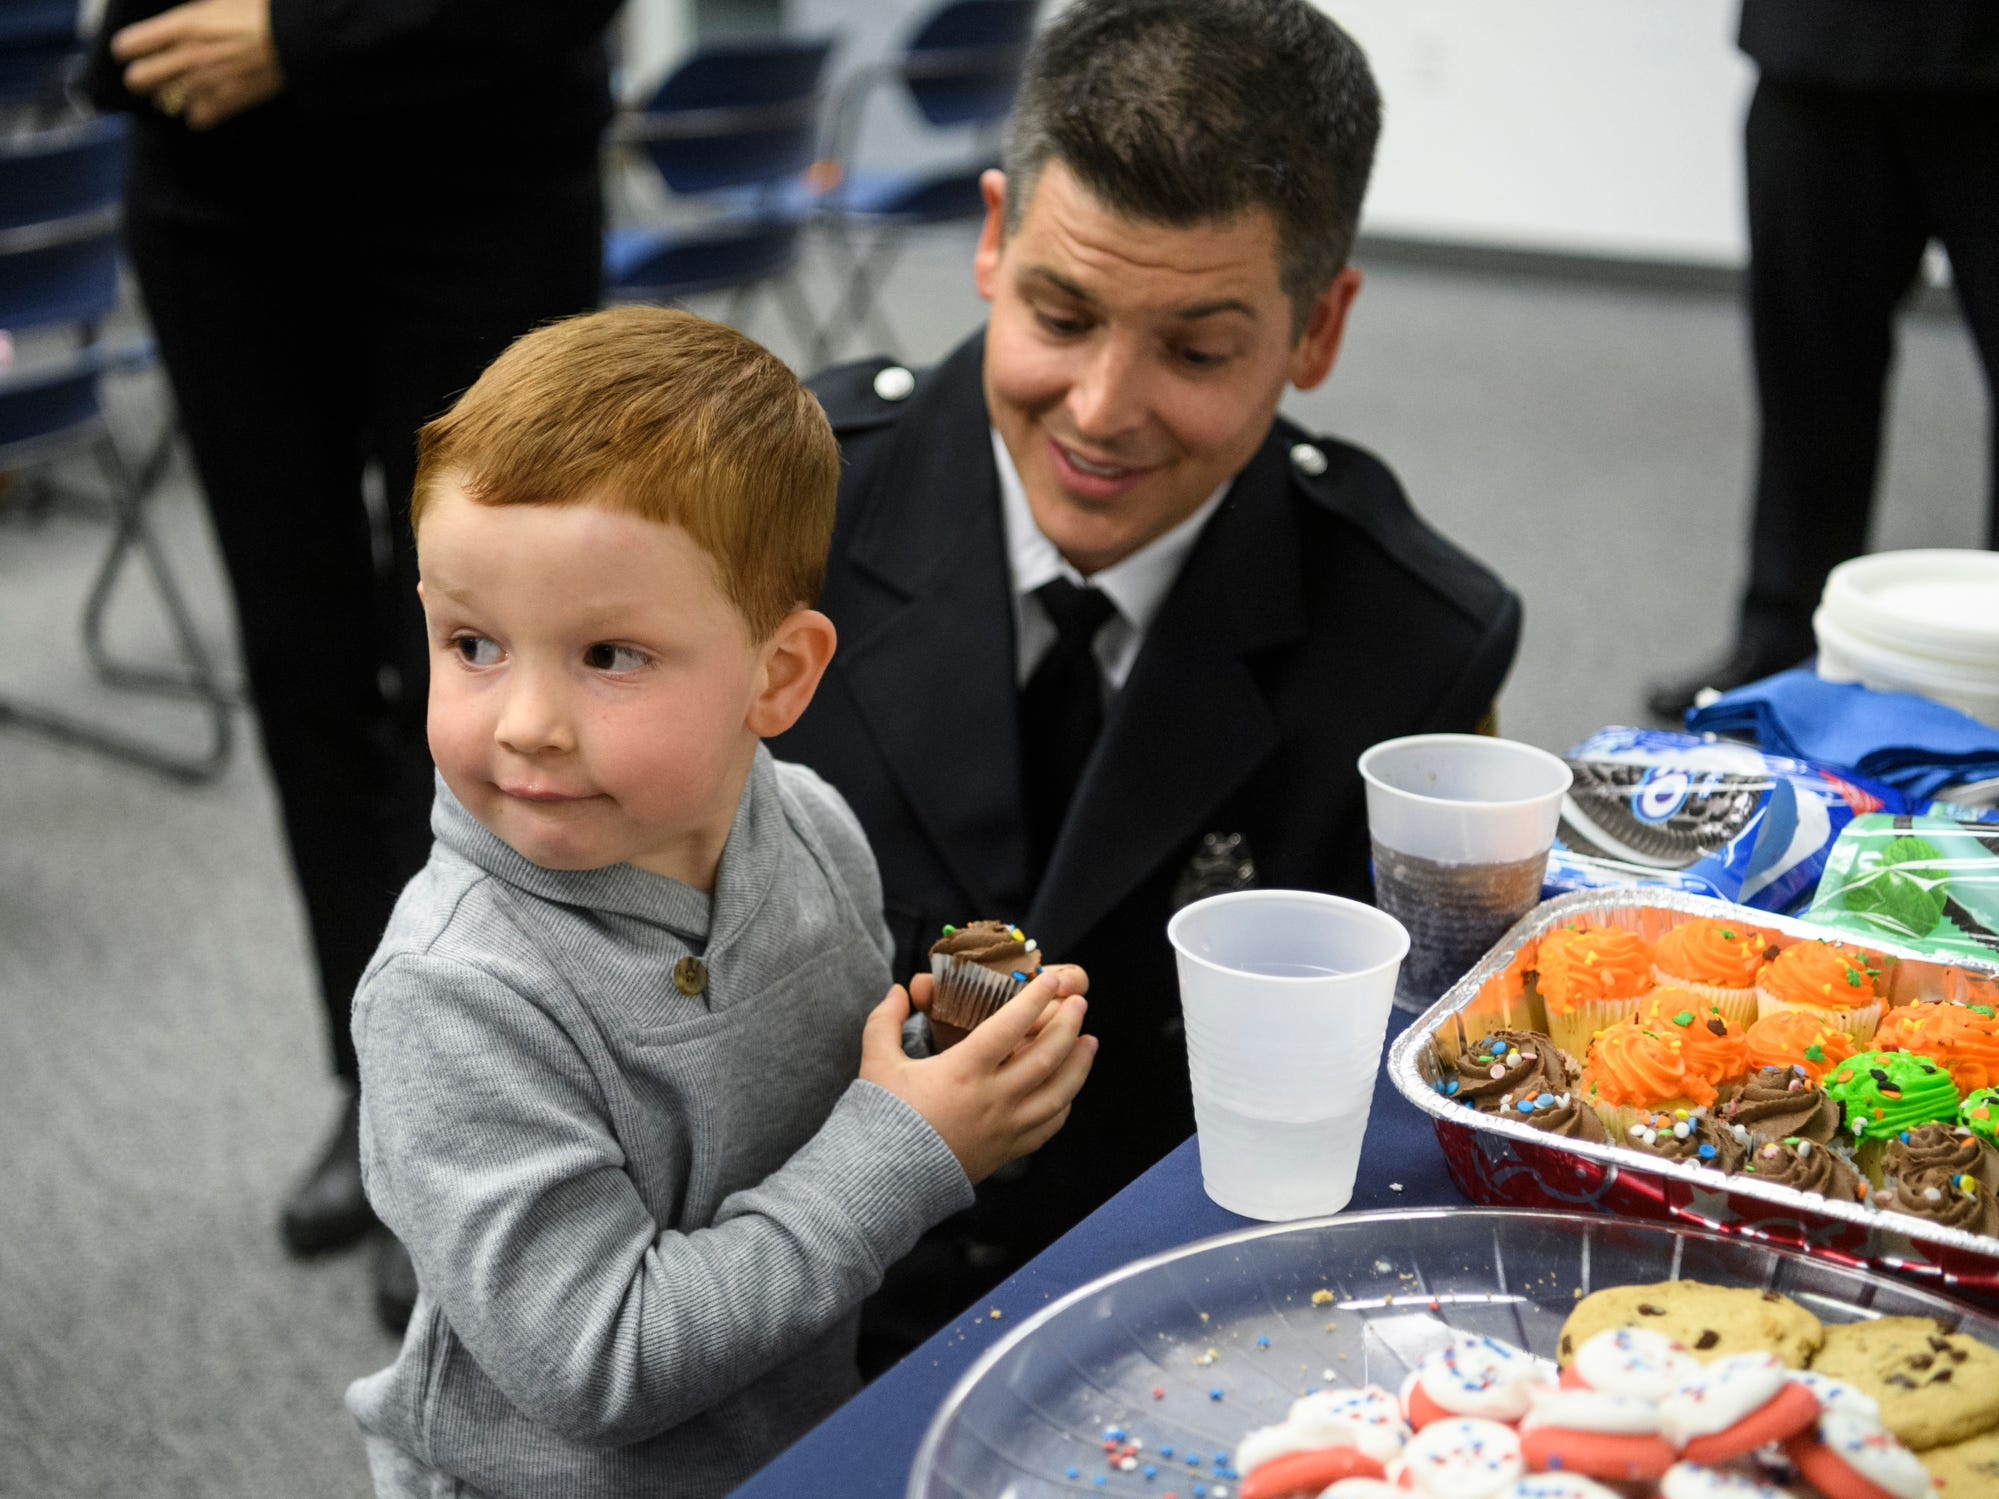 Axel Harris, 4, grabs a cupcake from the graduation refreshment table as he spends time with his father Cameron Harris, a new probationary Evansville Firefighter, at the American Red Cross Headquarters in Evansville, Ind., Friday, Oct. 12, 2018.